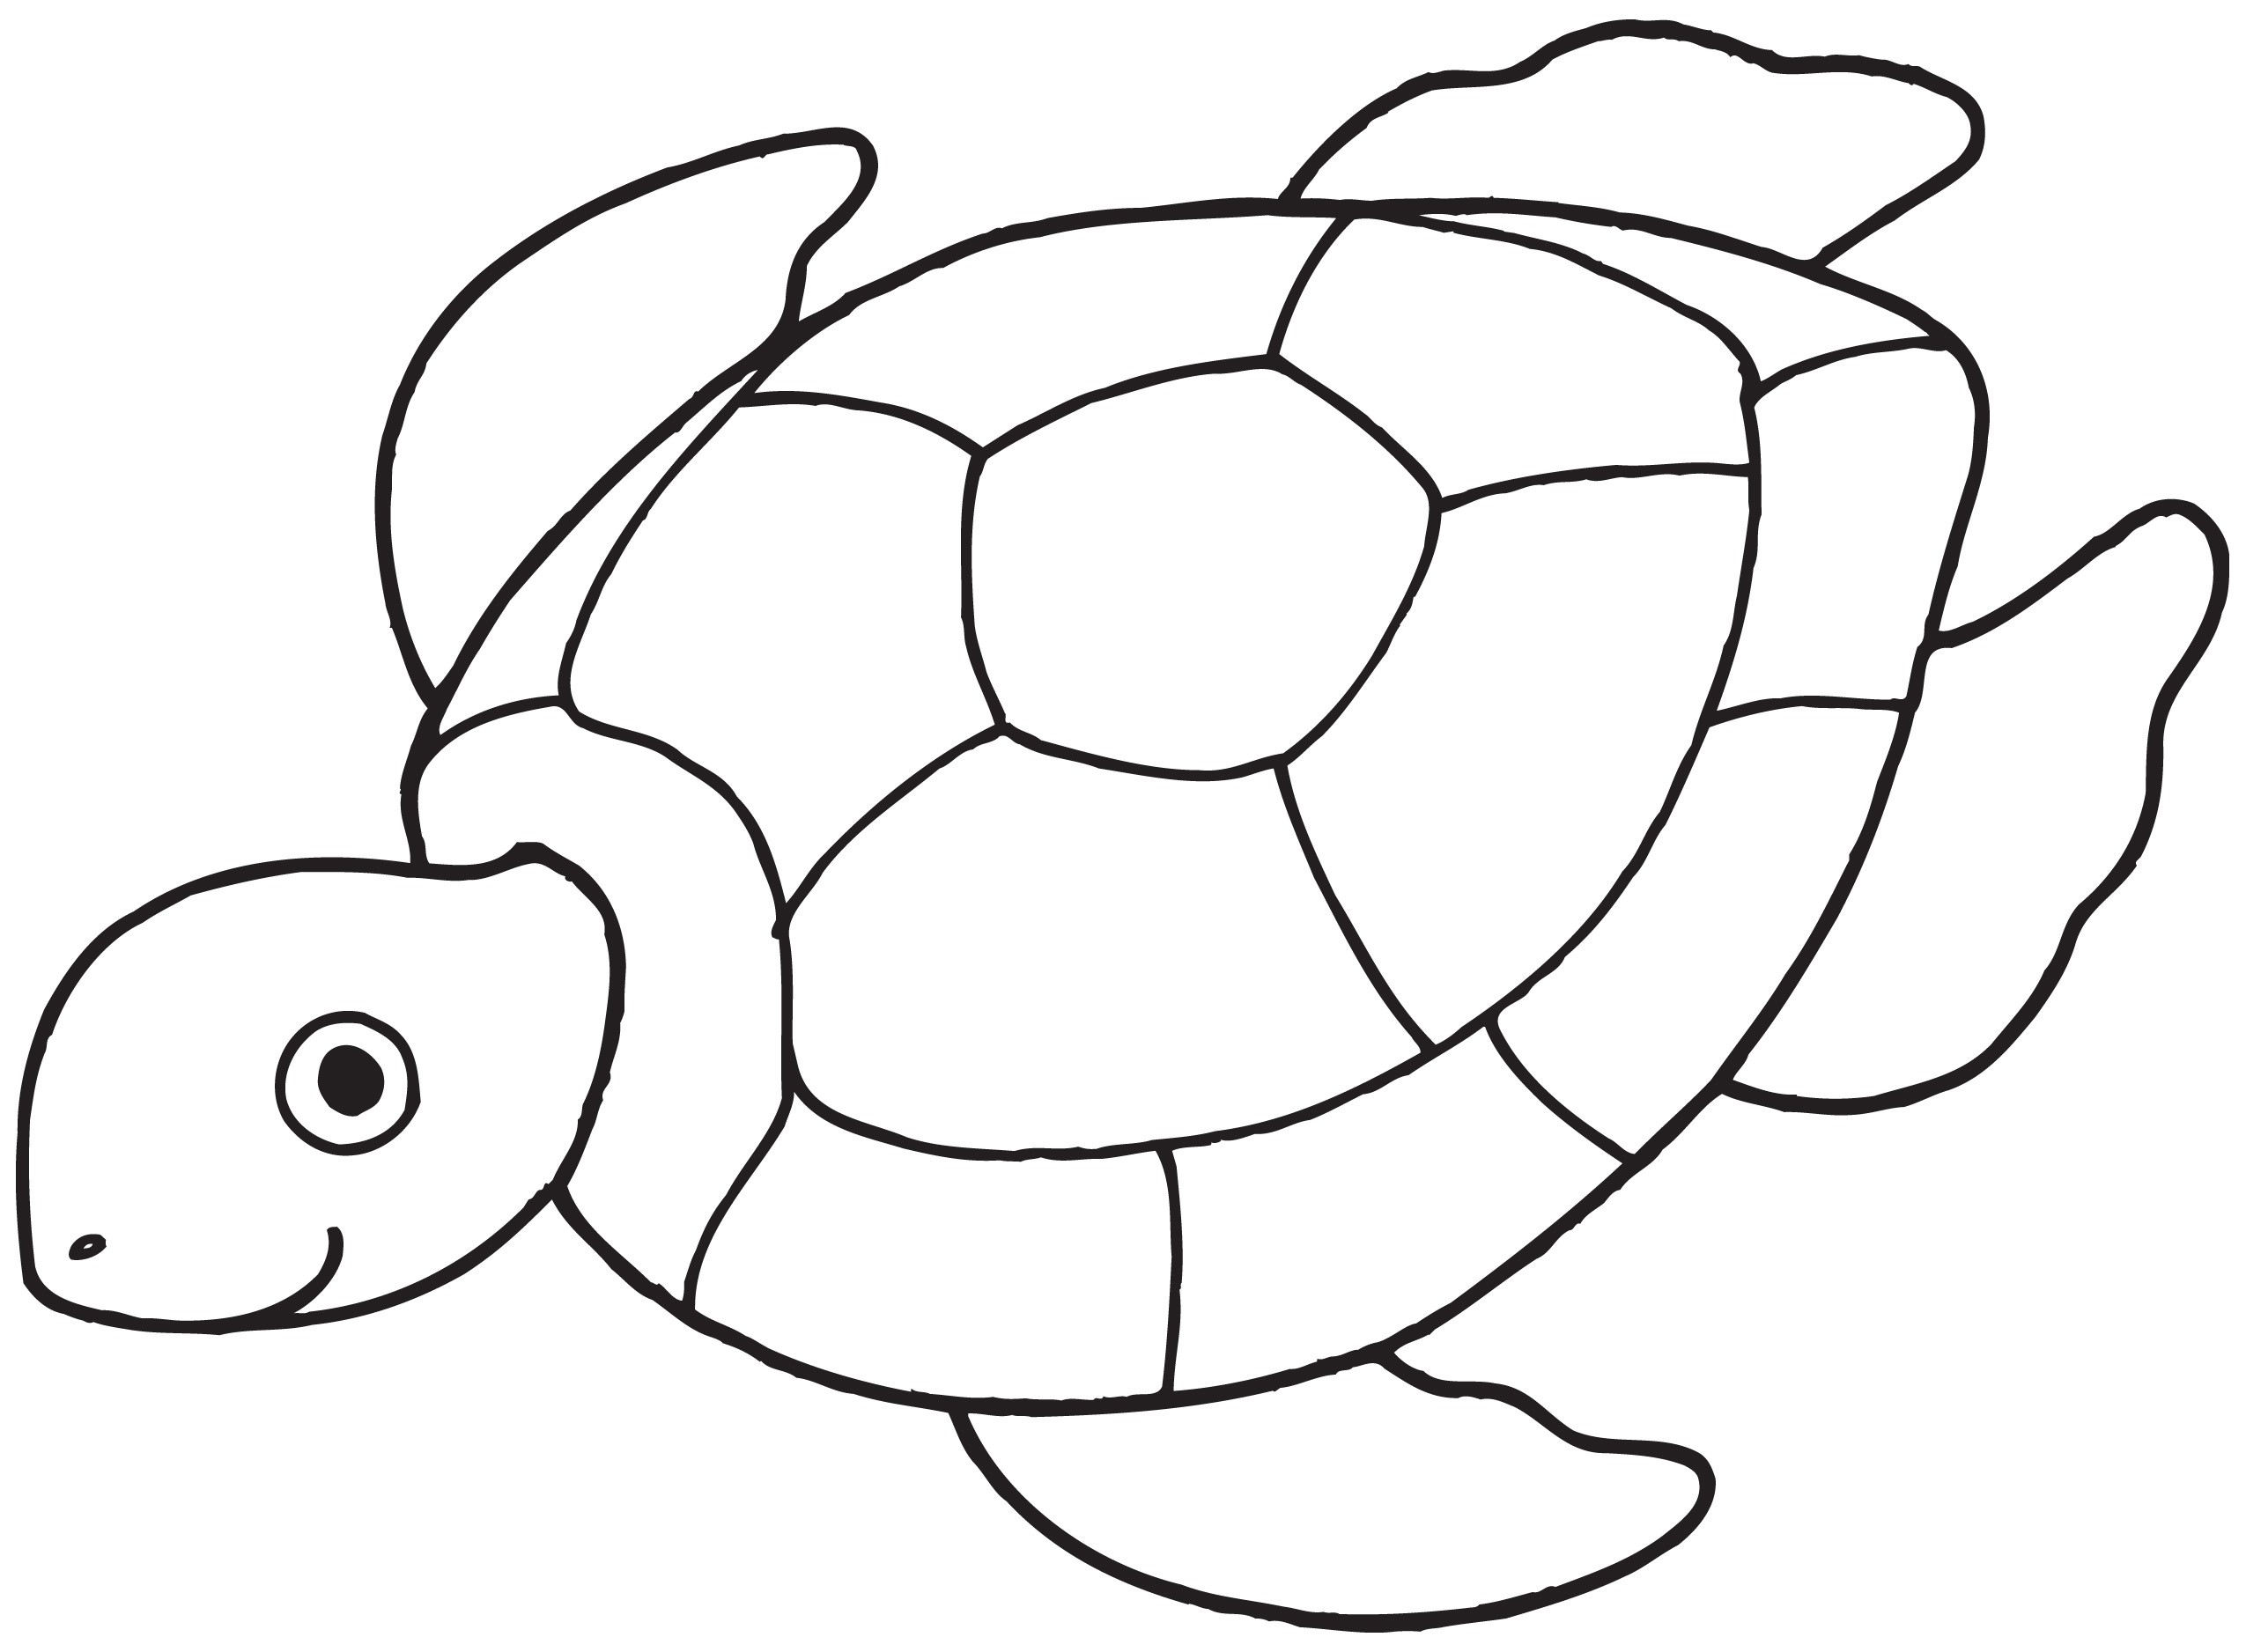 2550x1876 Free Turtle Clipart Black And White Image